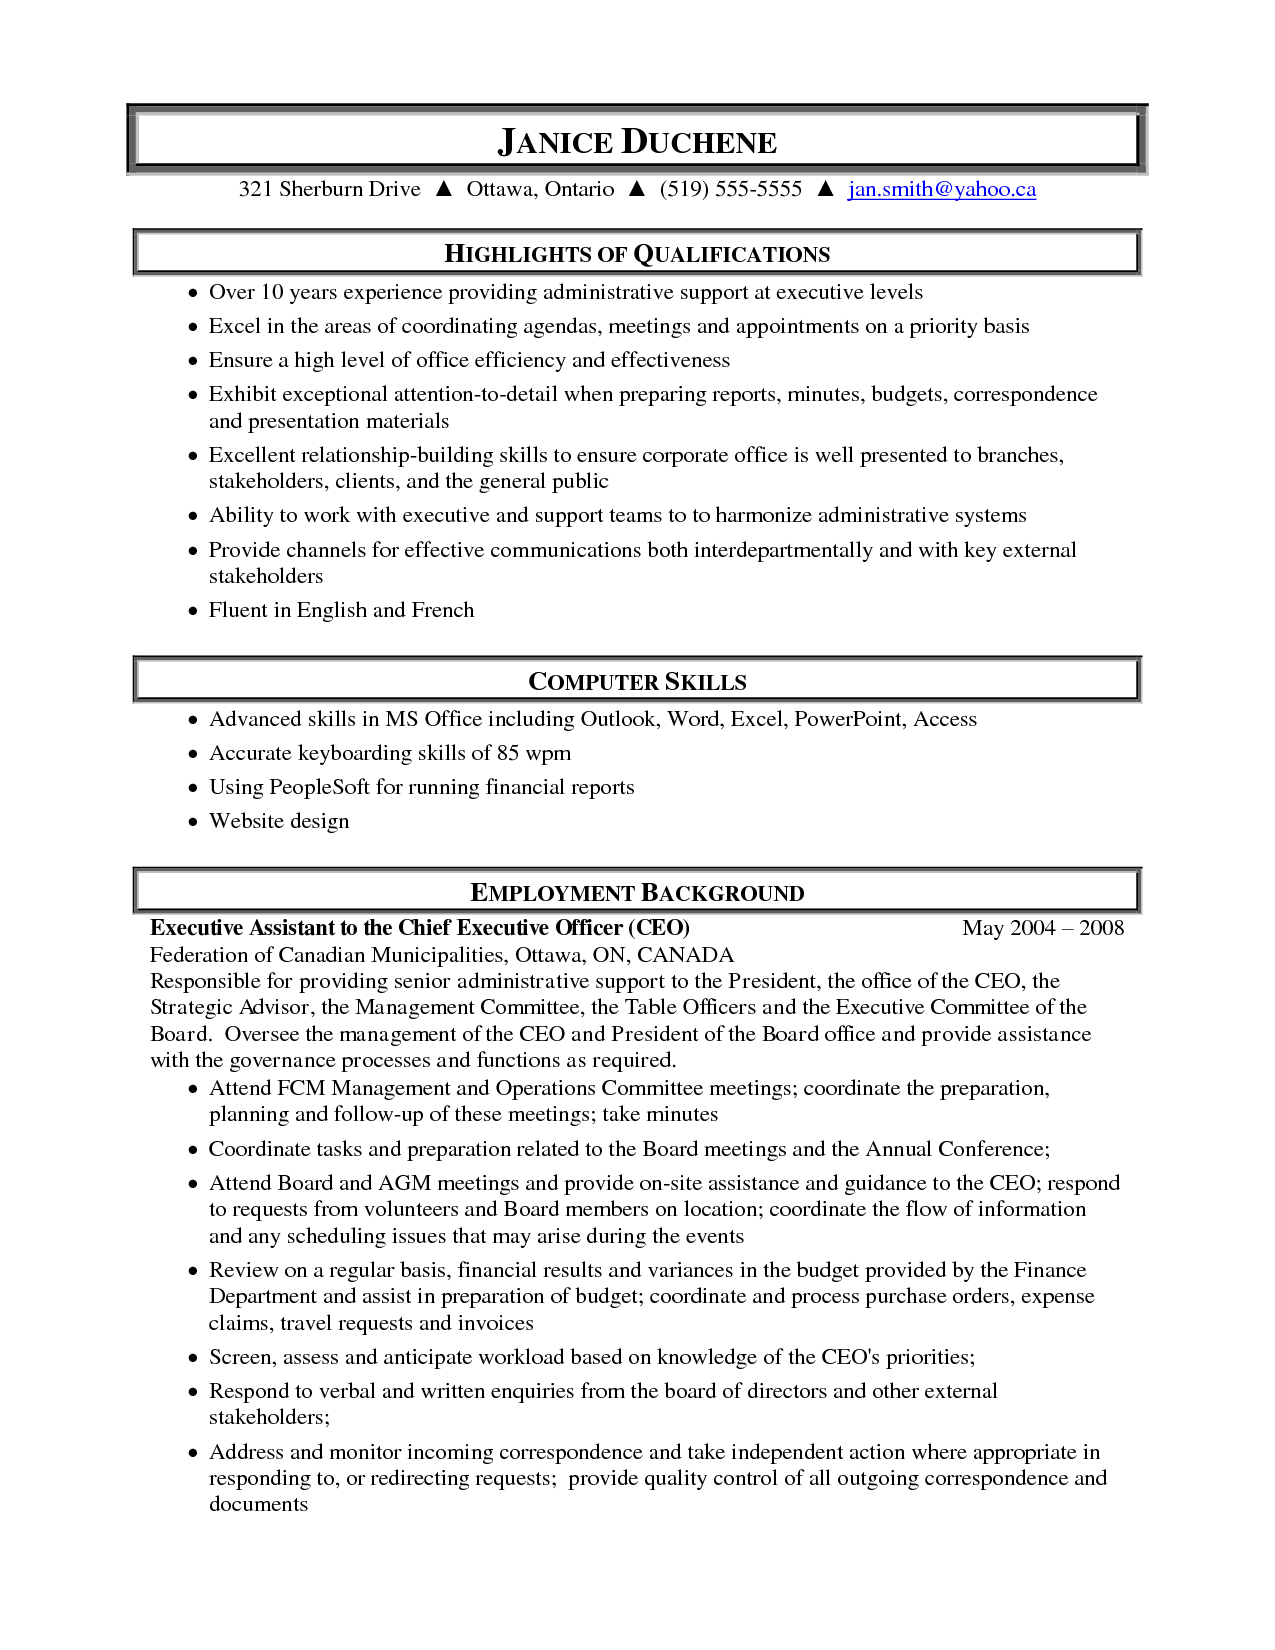 Elegant Medical Administrative Assistant Resume Samples Highlight Of Qualifications